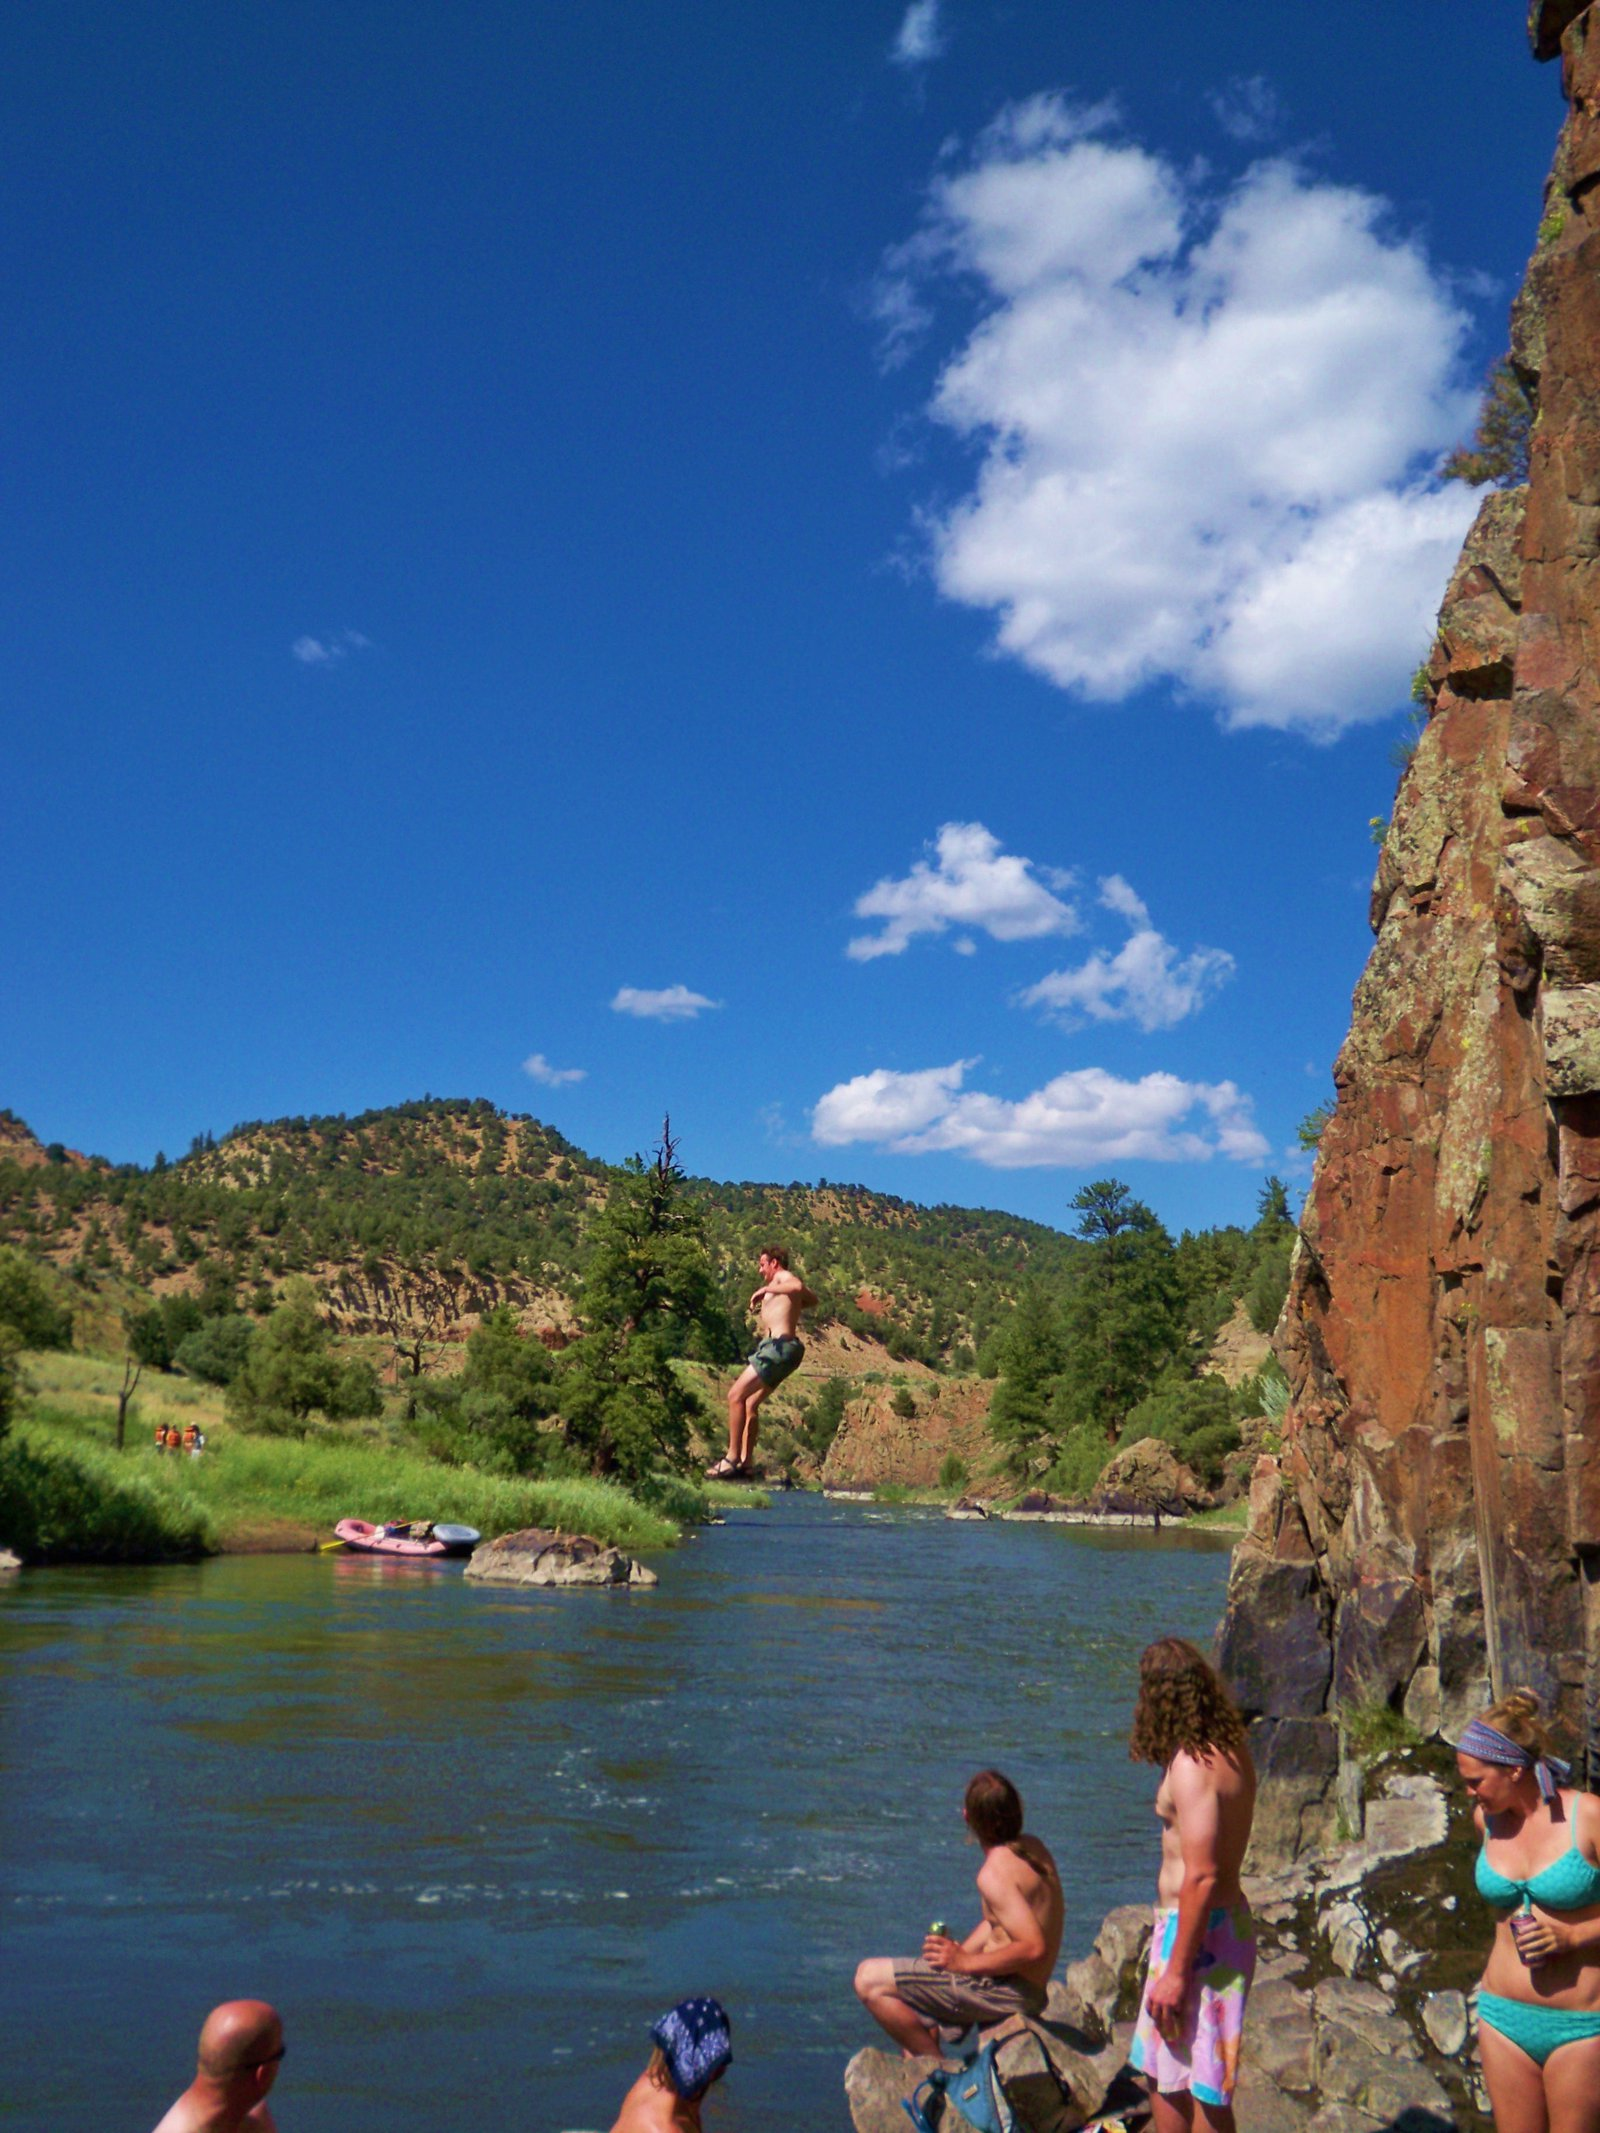 Cliff jumping  on a beautiful day